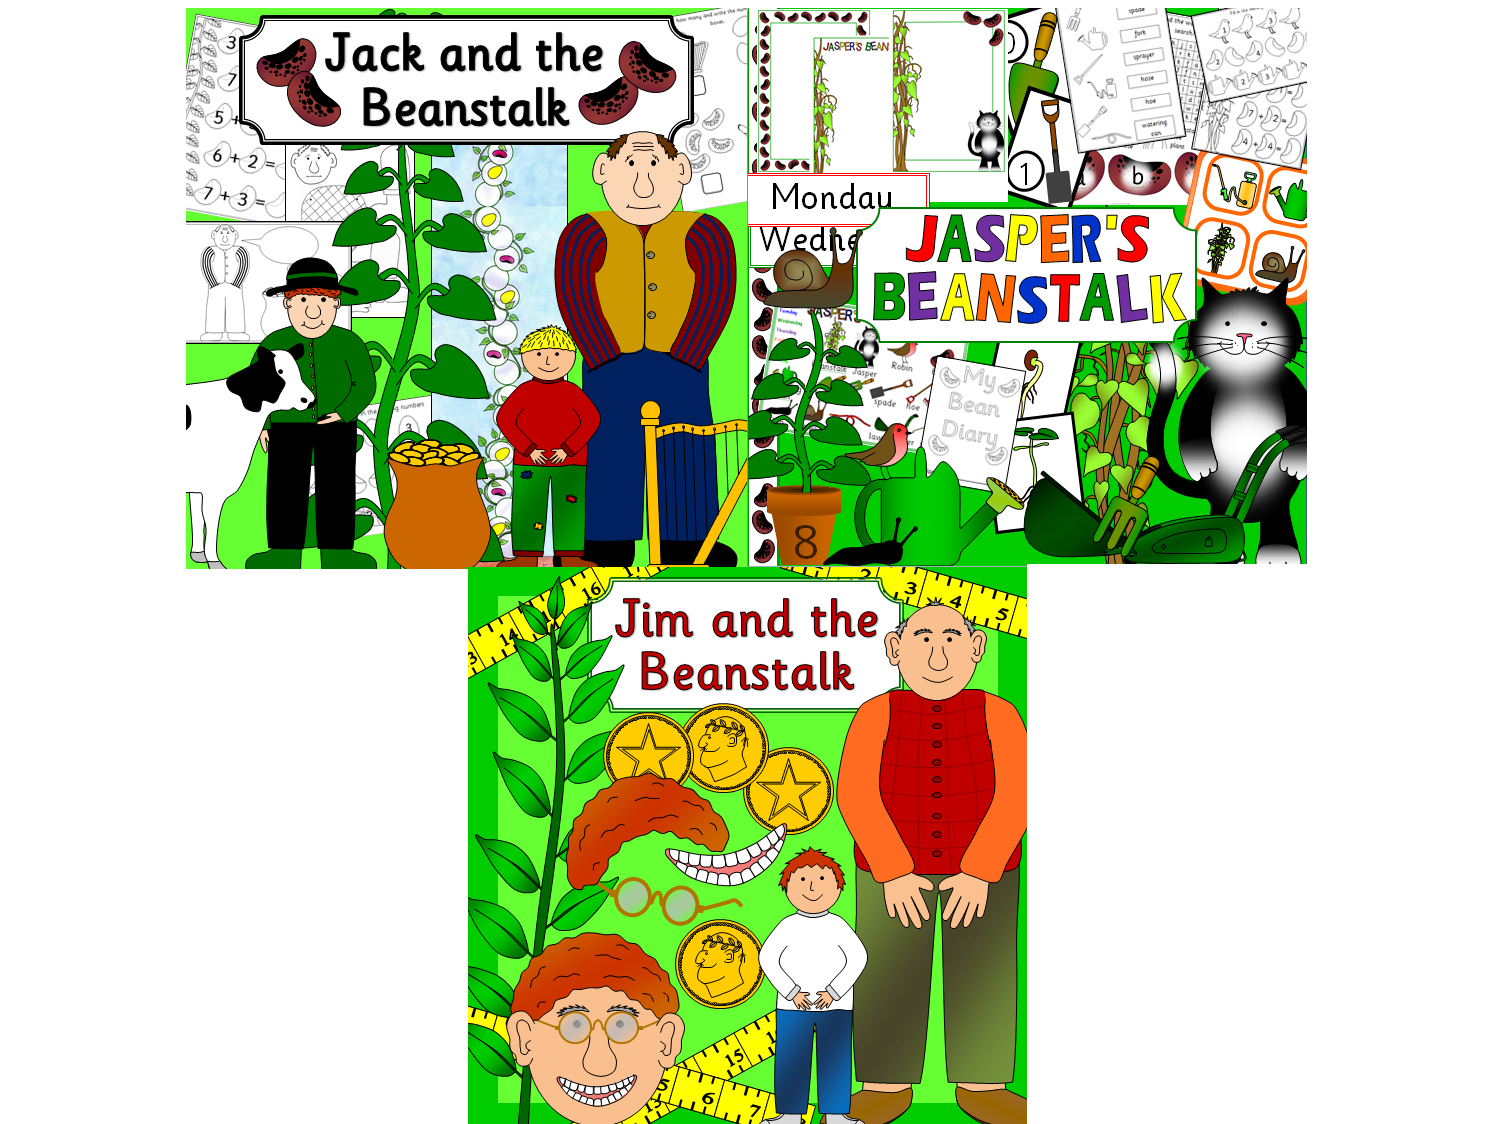 Growing beanstalk story resources - Jack and the Beanstalk, Jasper's Beanstalk, Jim and the Beanstalk